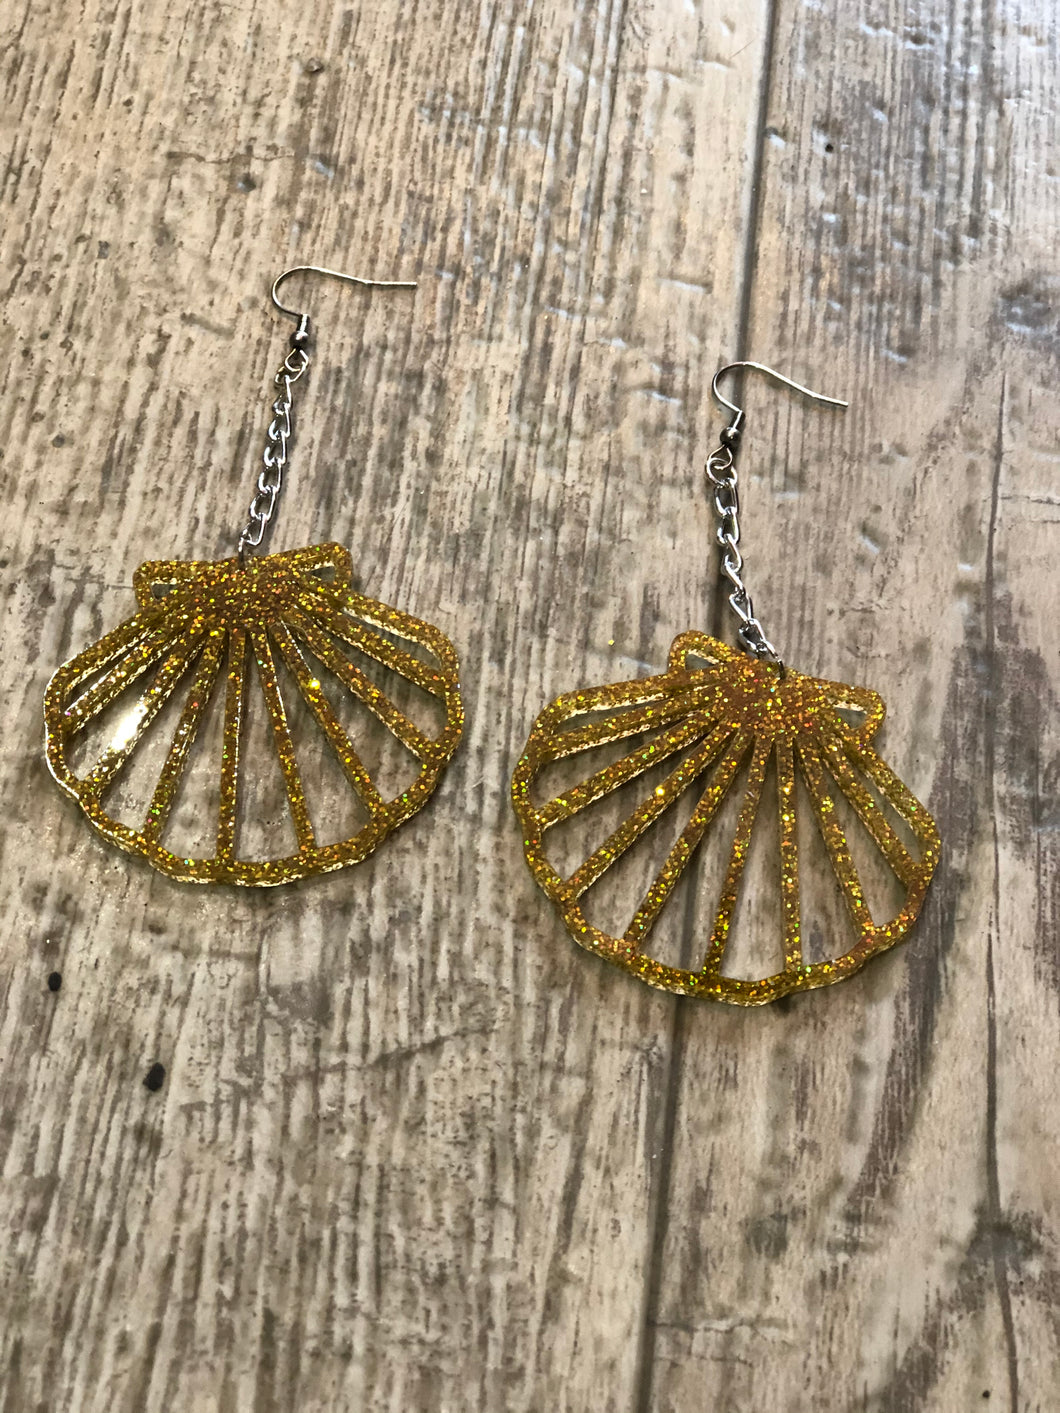 Gold Glitter Sea Shell Earrings by NBB | Earrings - 80s 90s Retro Vintage Clothing | Spark Pretty